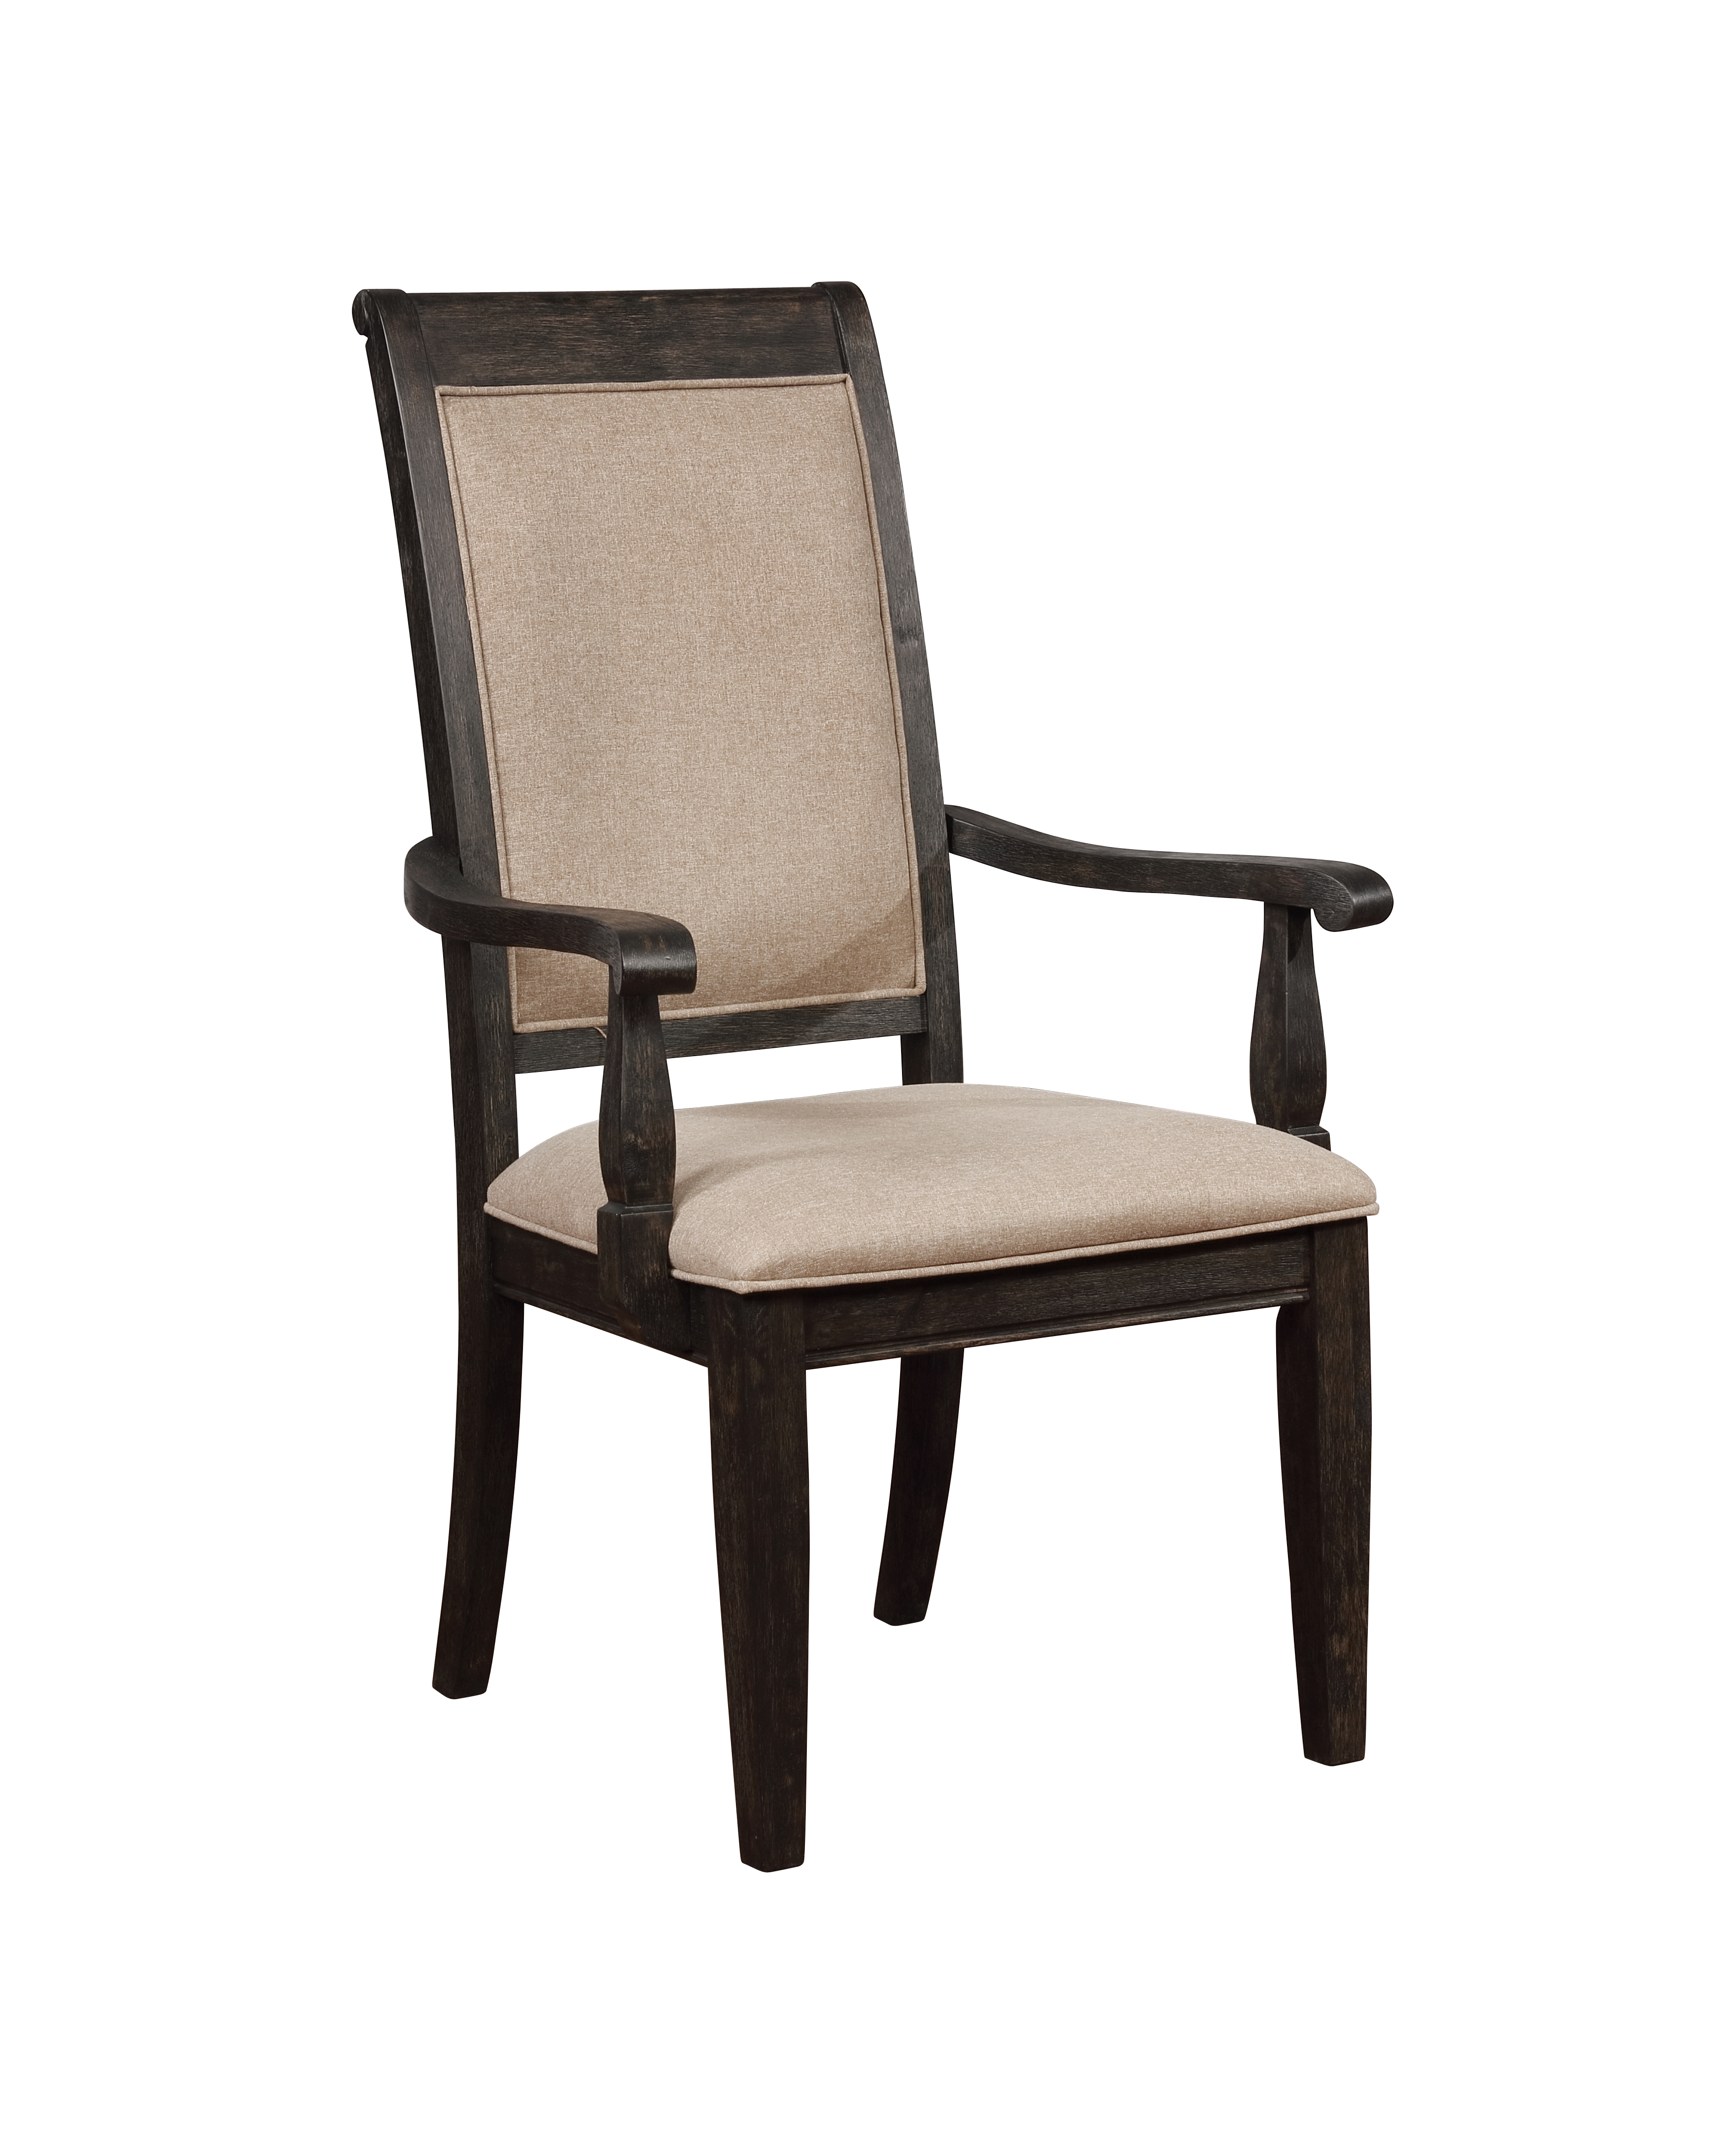 ARM CHAIR (Pack of 2)